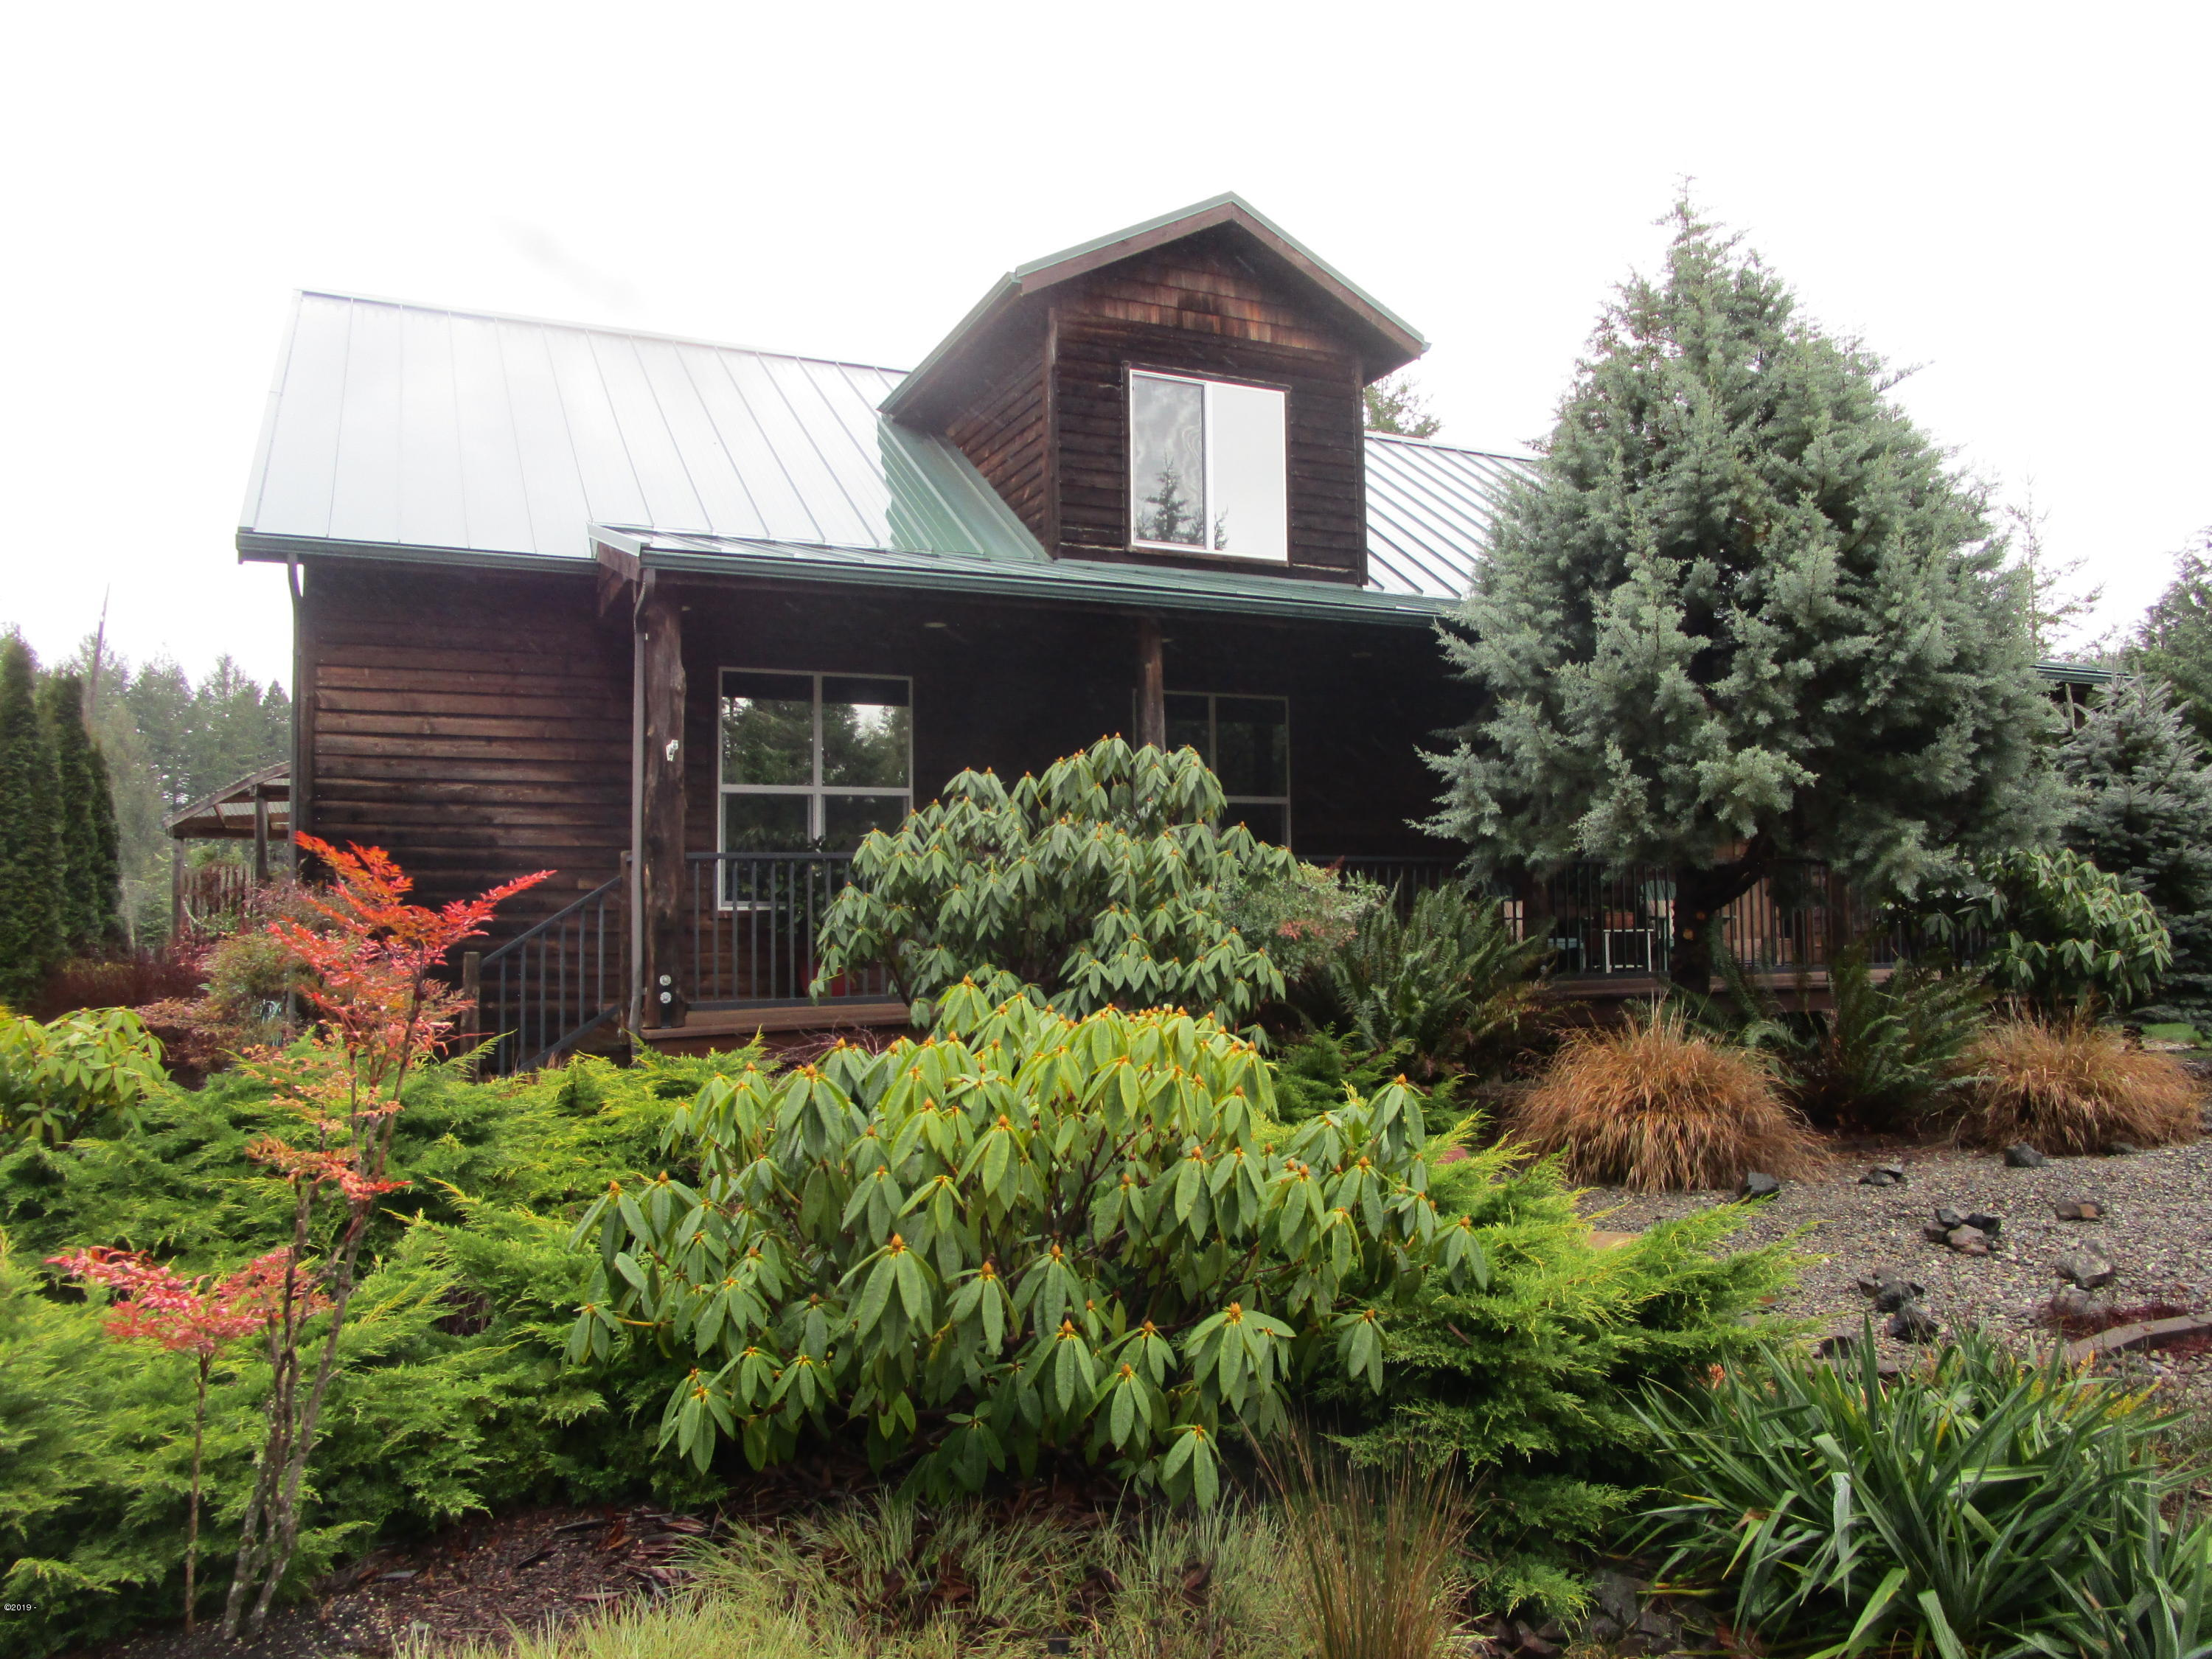 69265 Sandpoint Rd, North Bend, OR 97459 - 1 (2)